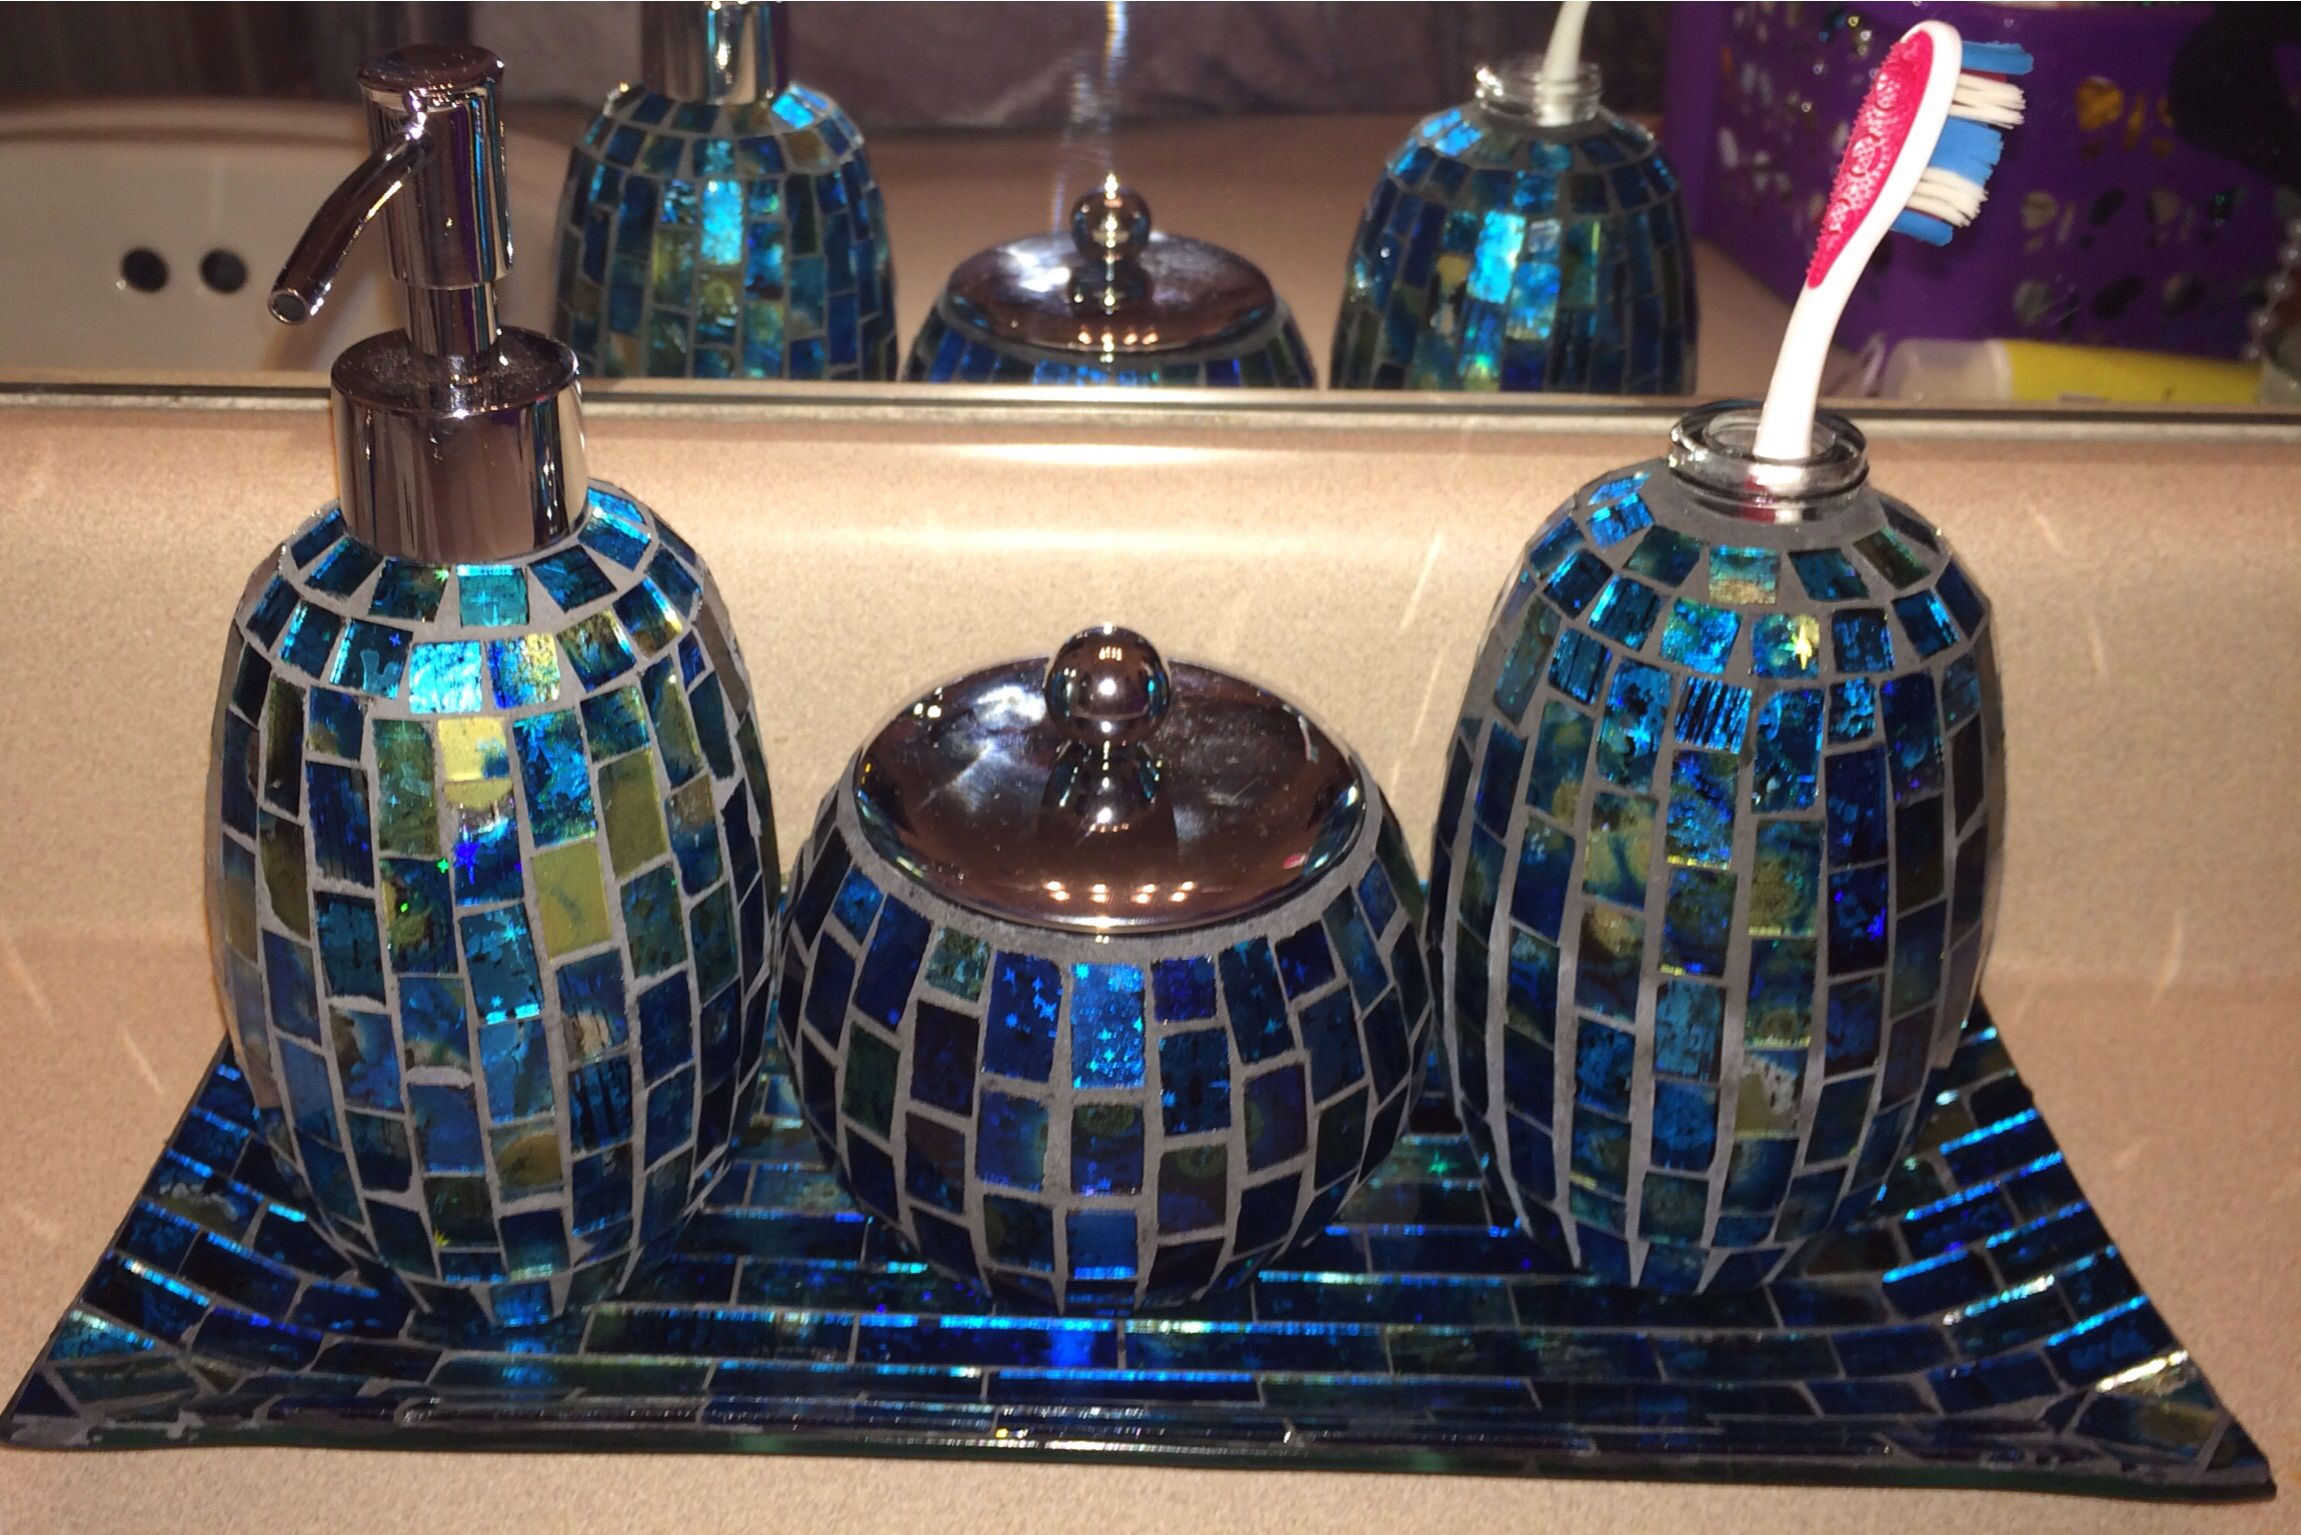 Blue Turquoise And Green Mosaic Bathroom Accessories Set